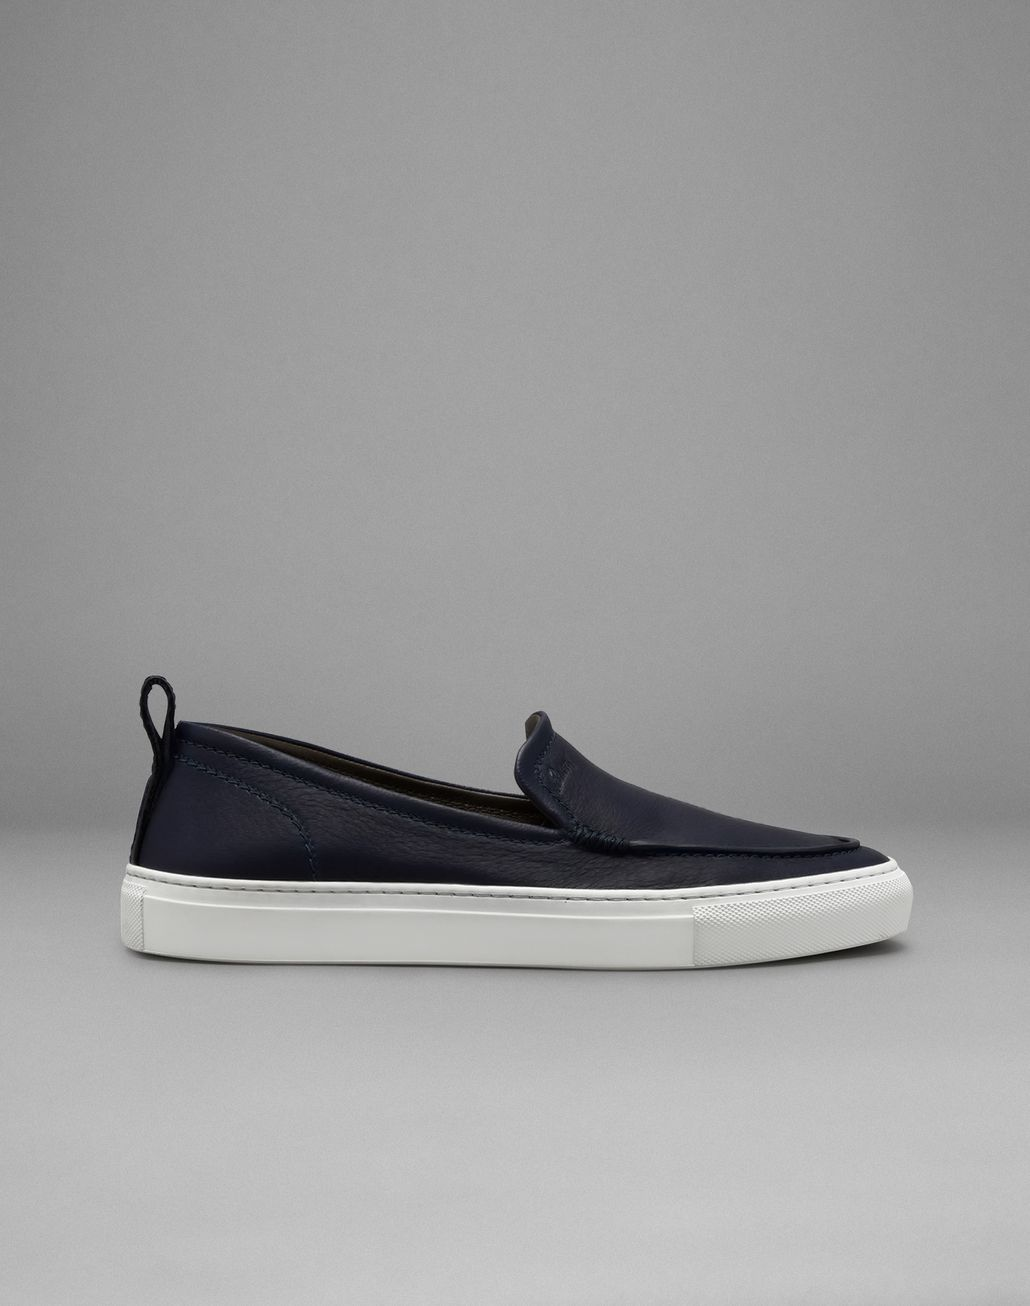 BRIONI Sneakers Slip-On Blu Navy Sneaker Uomo f